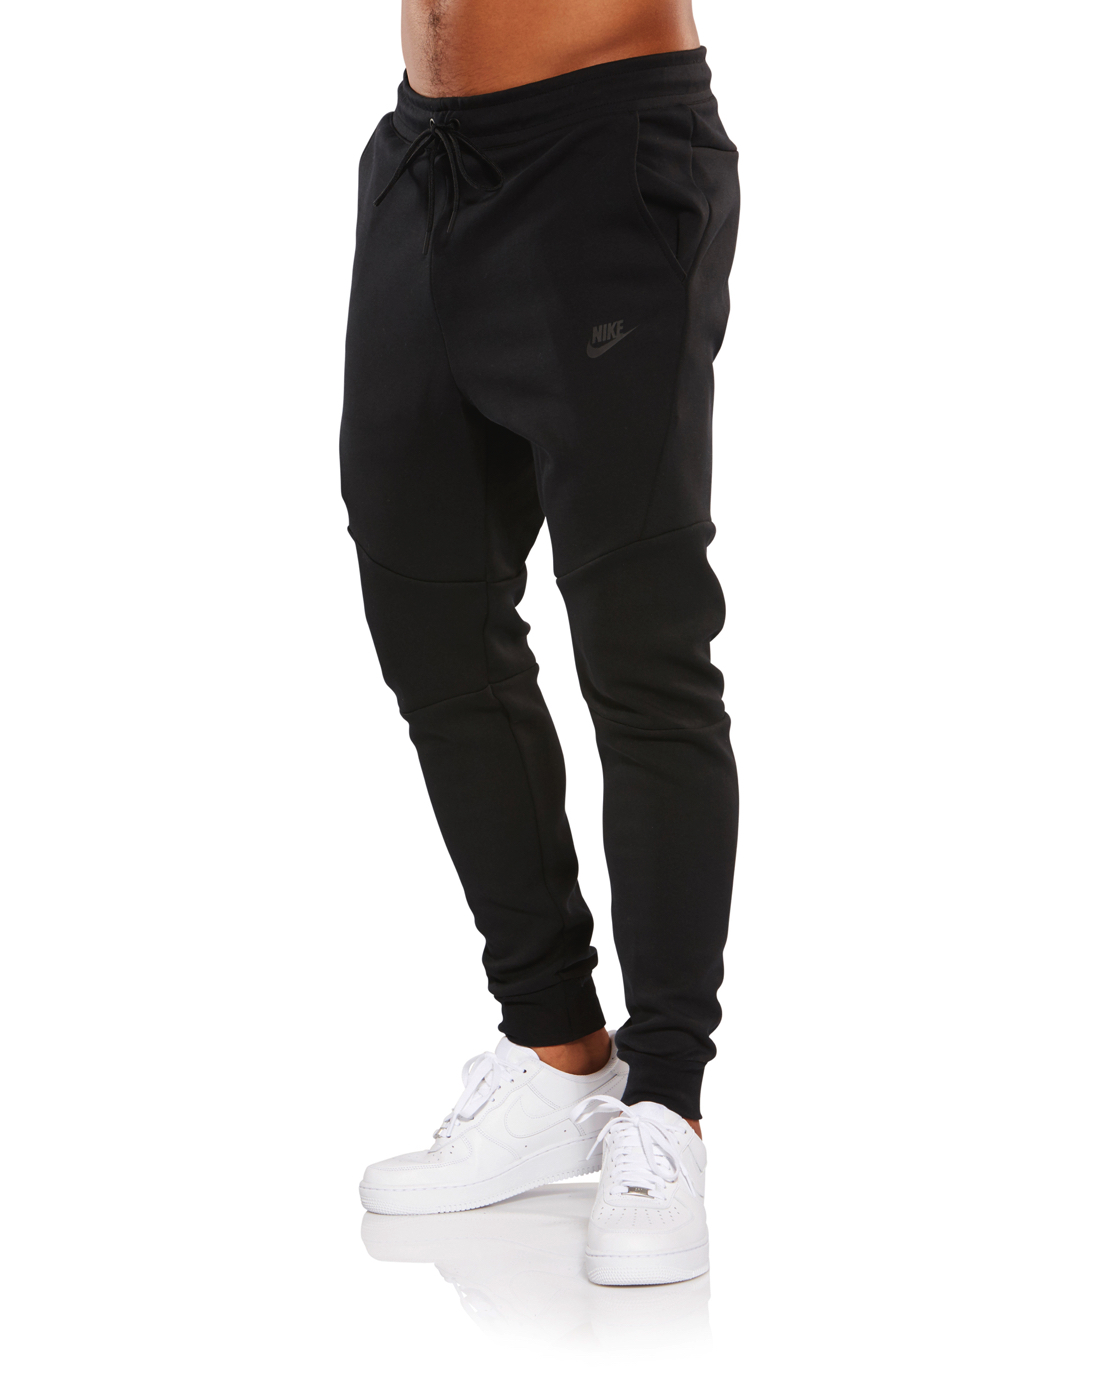 Nike Teech Fleece Sweats